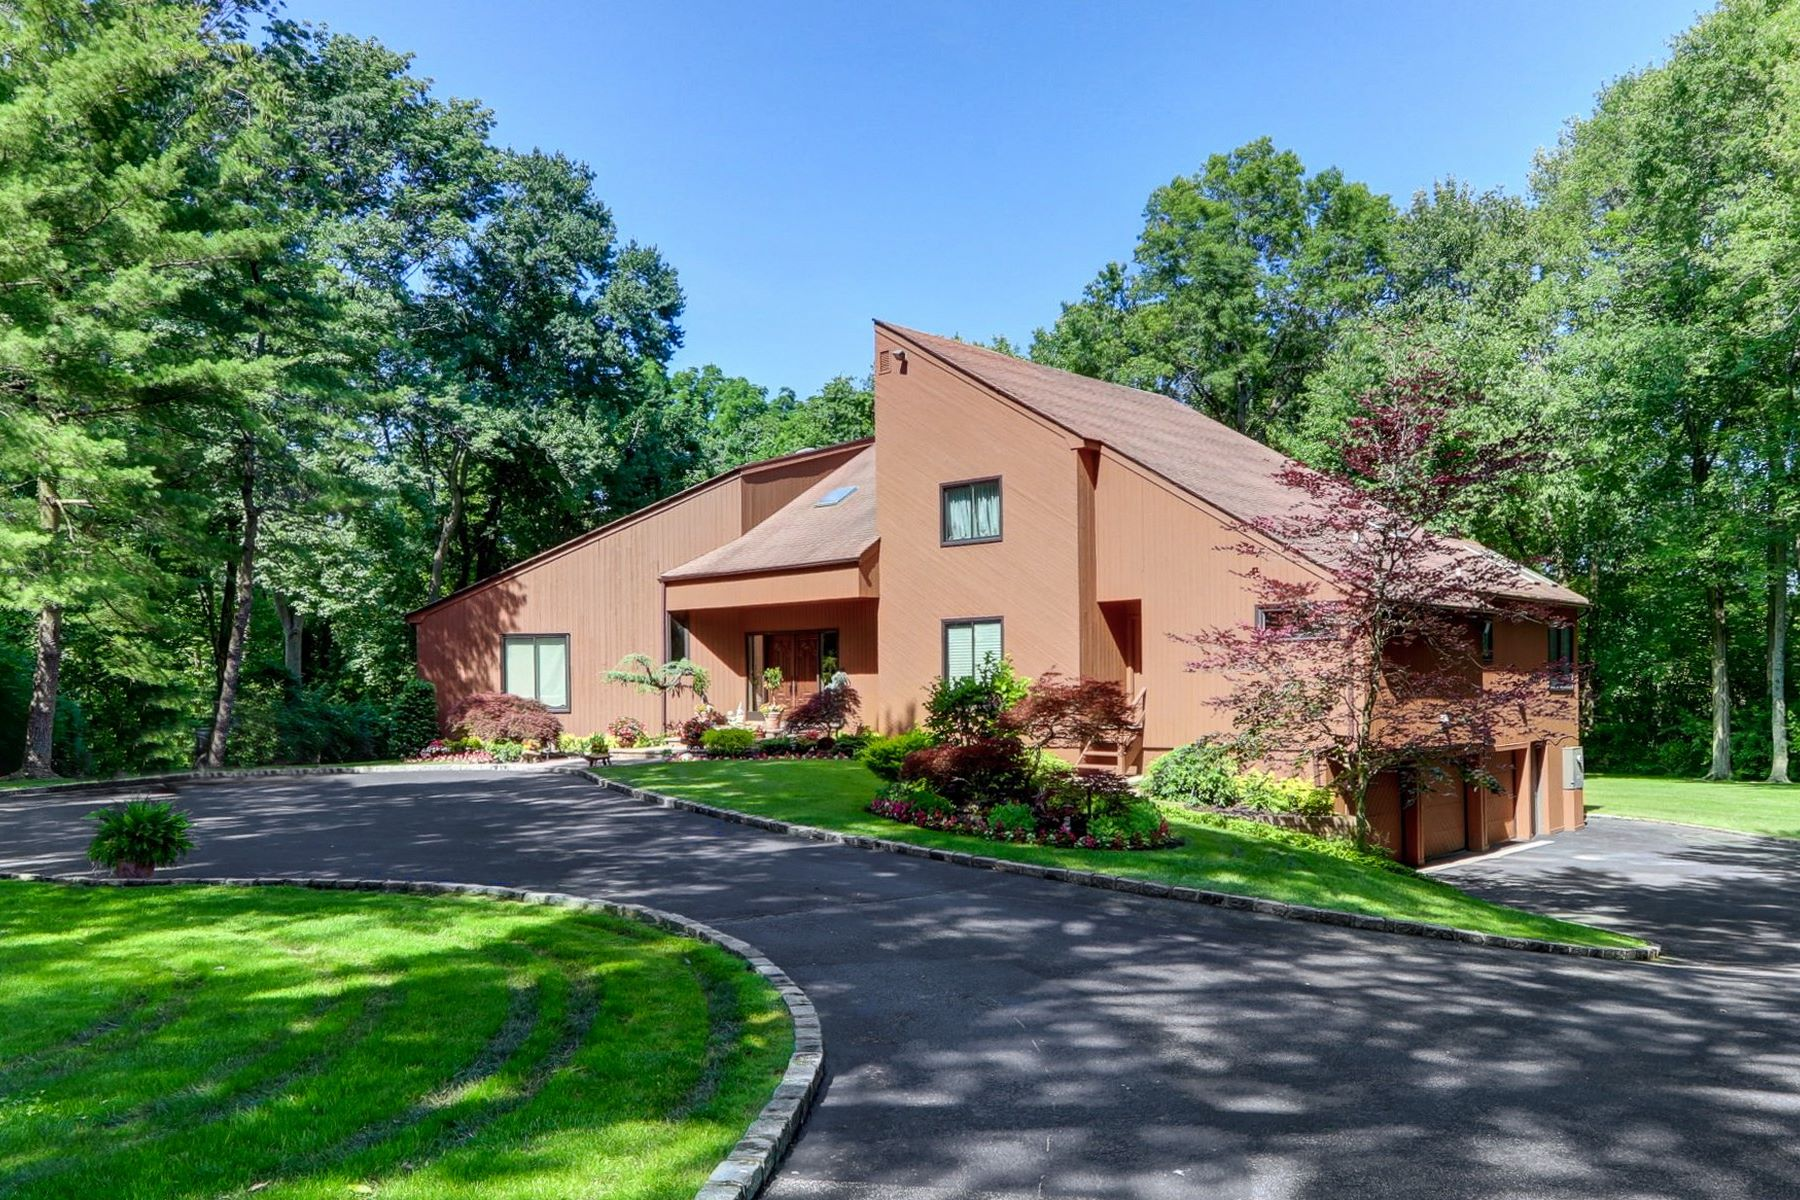 Single Family Homes for Sale at Old Brookville 14 Woodfield Ln Old Brookville, New York 11545 United States